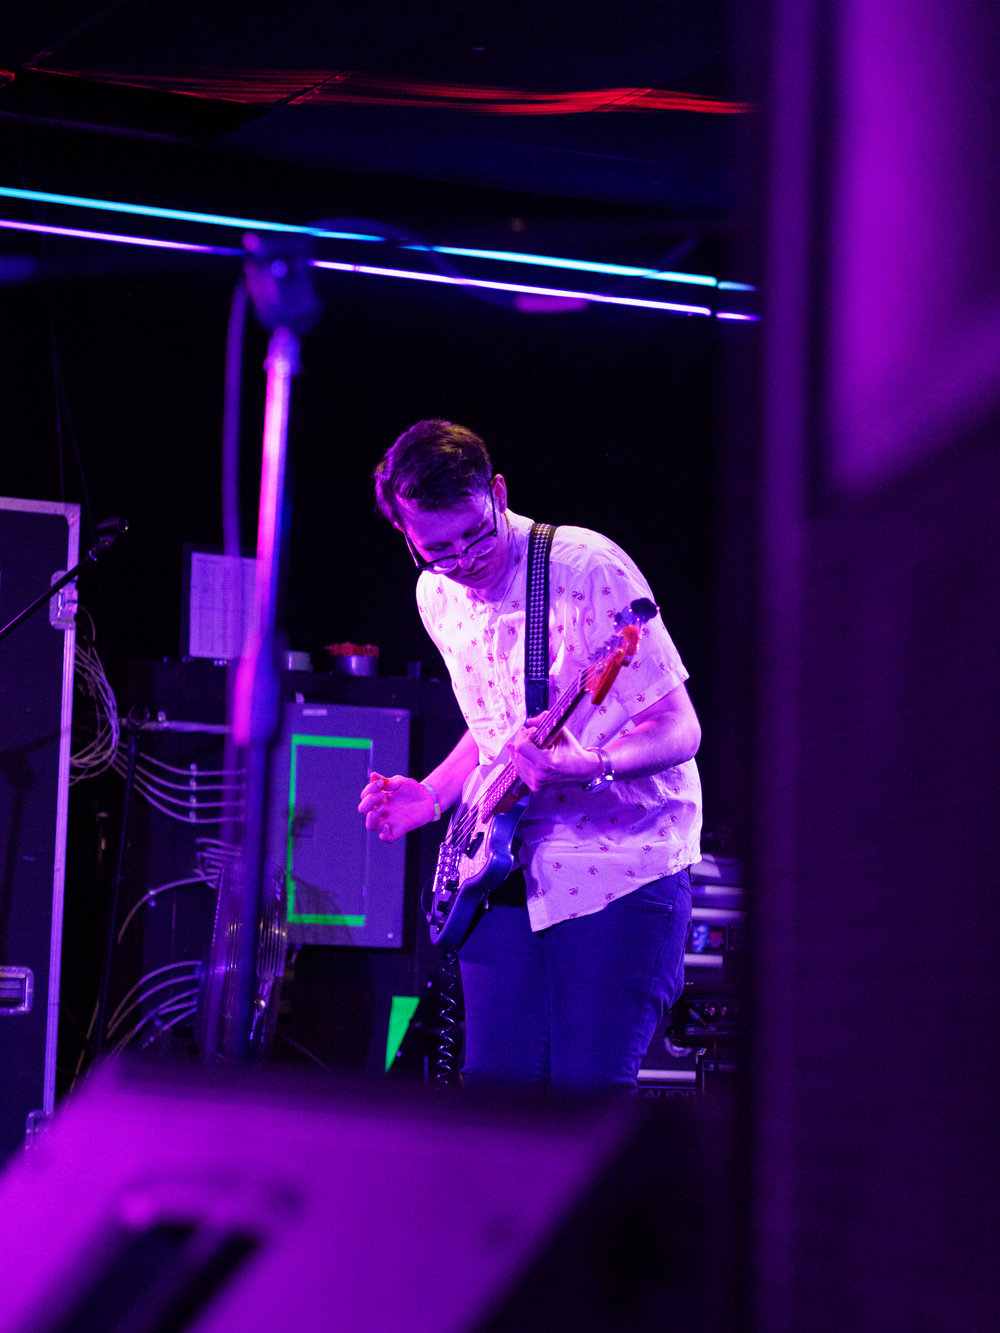 17-06-10_Concert_at_the_Foundry_6100505.JPG